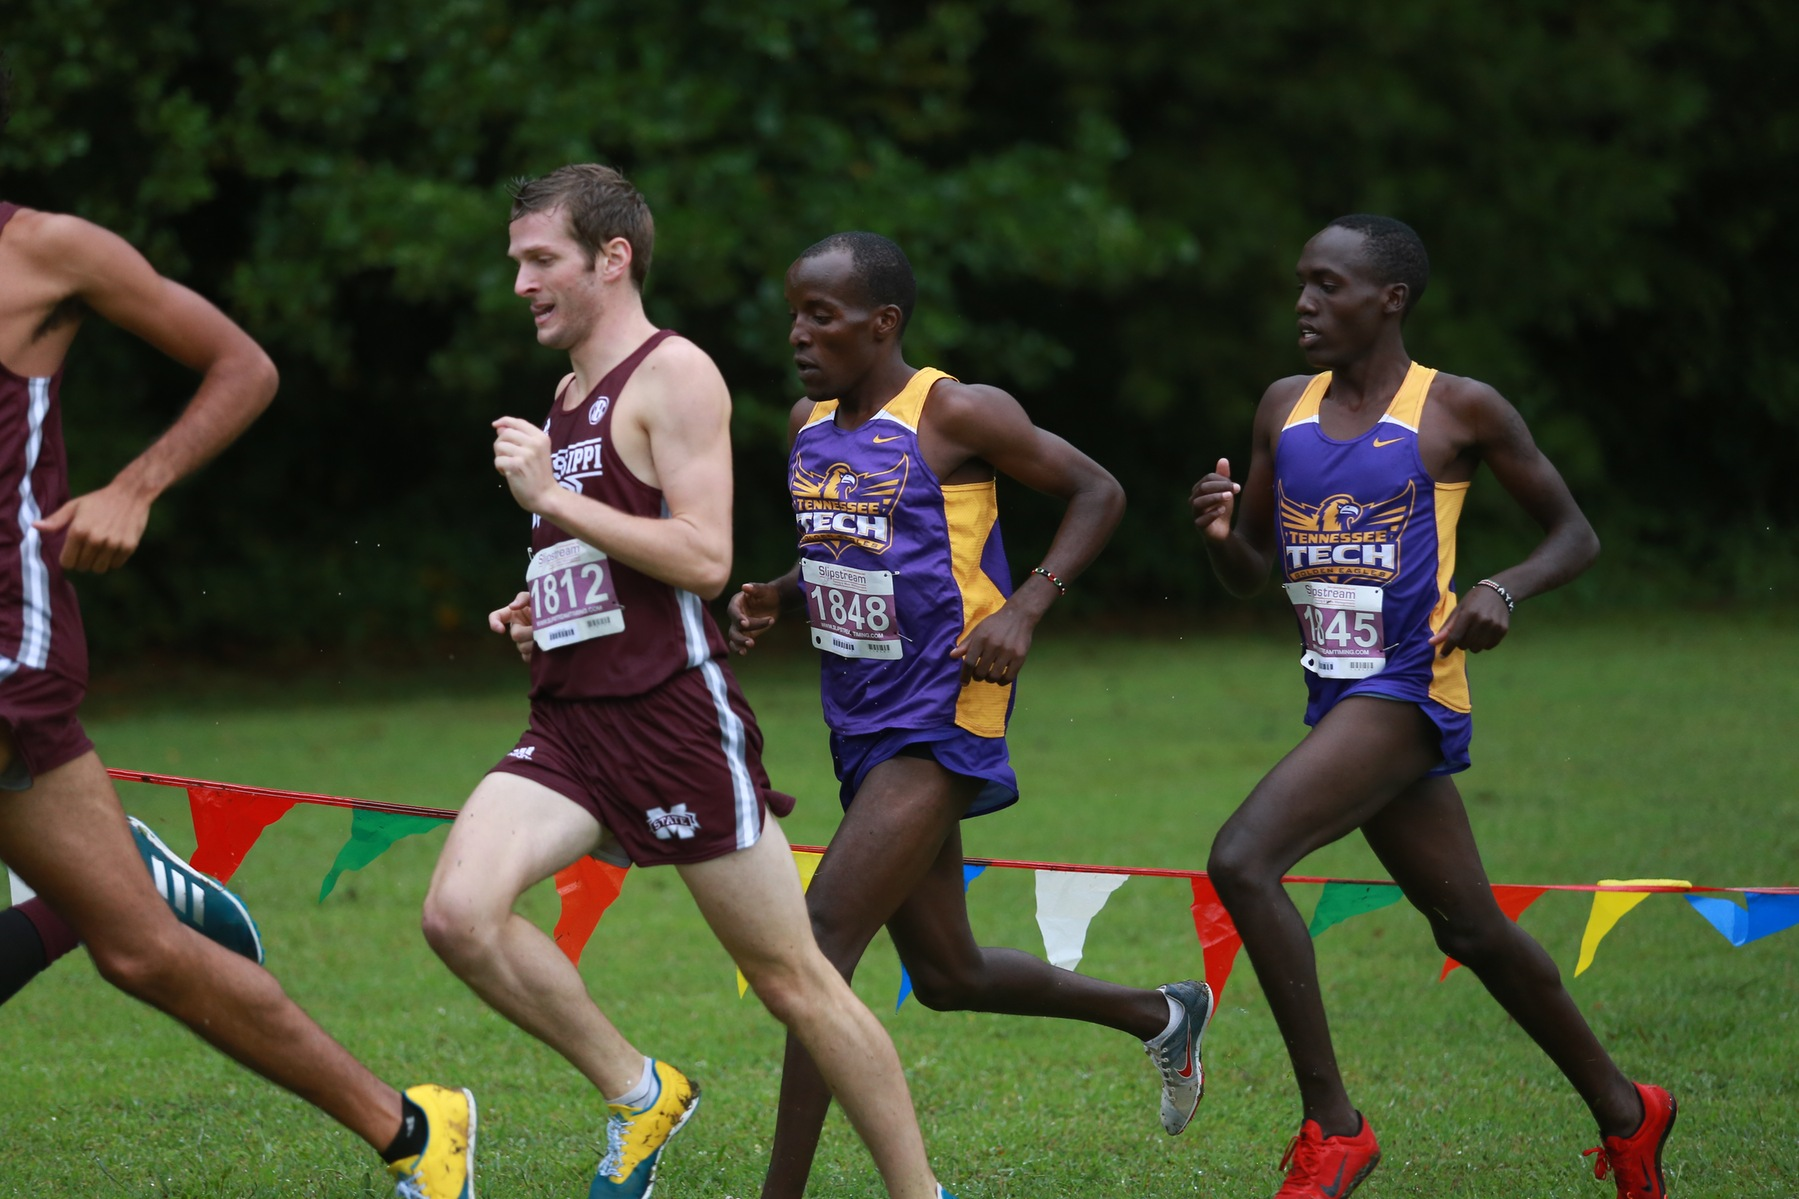 Men's cross country holds steady in latest USTFCCCA South Region rankings